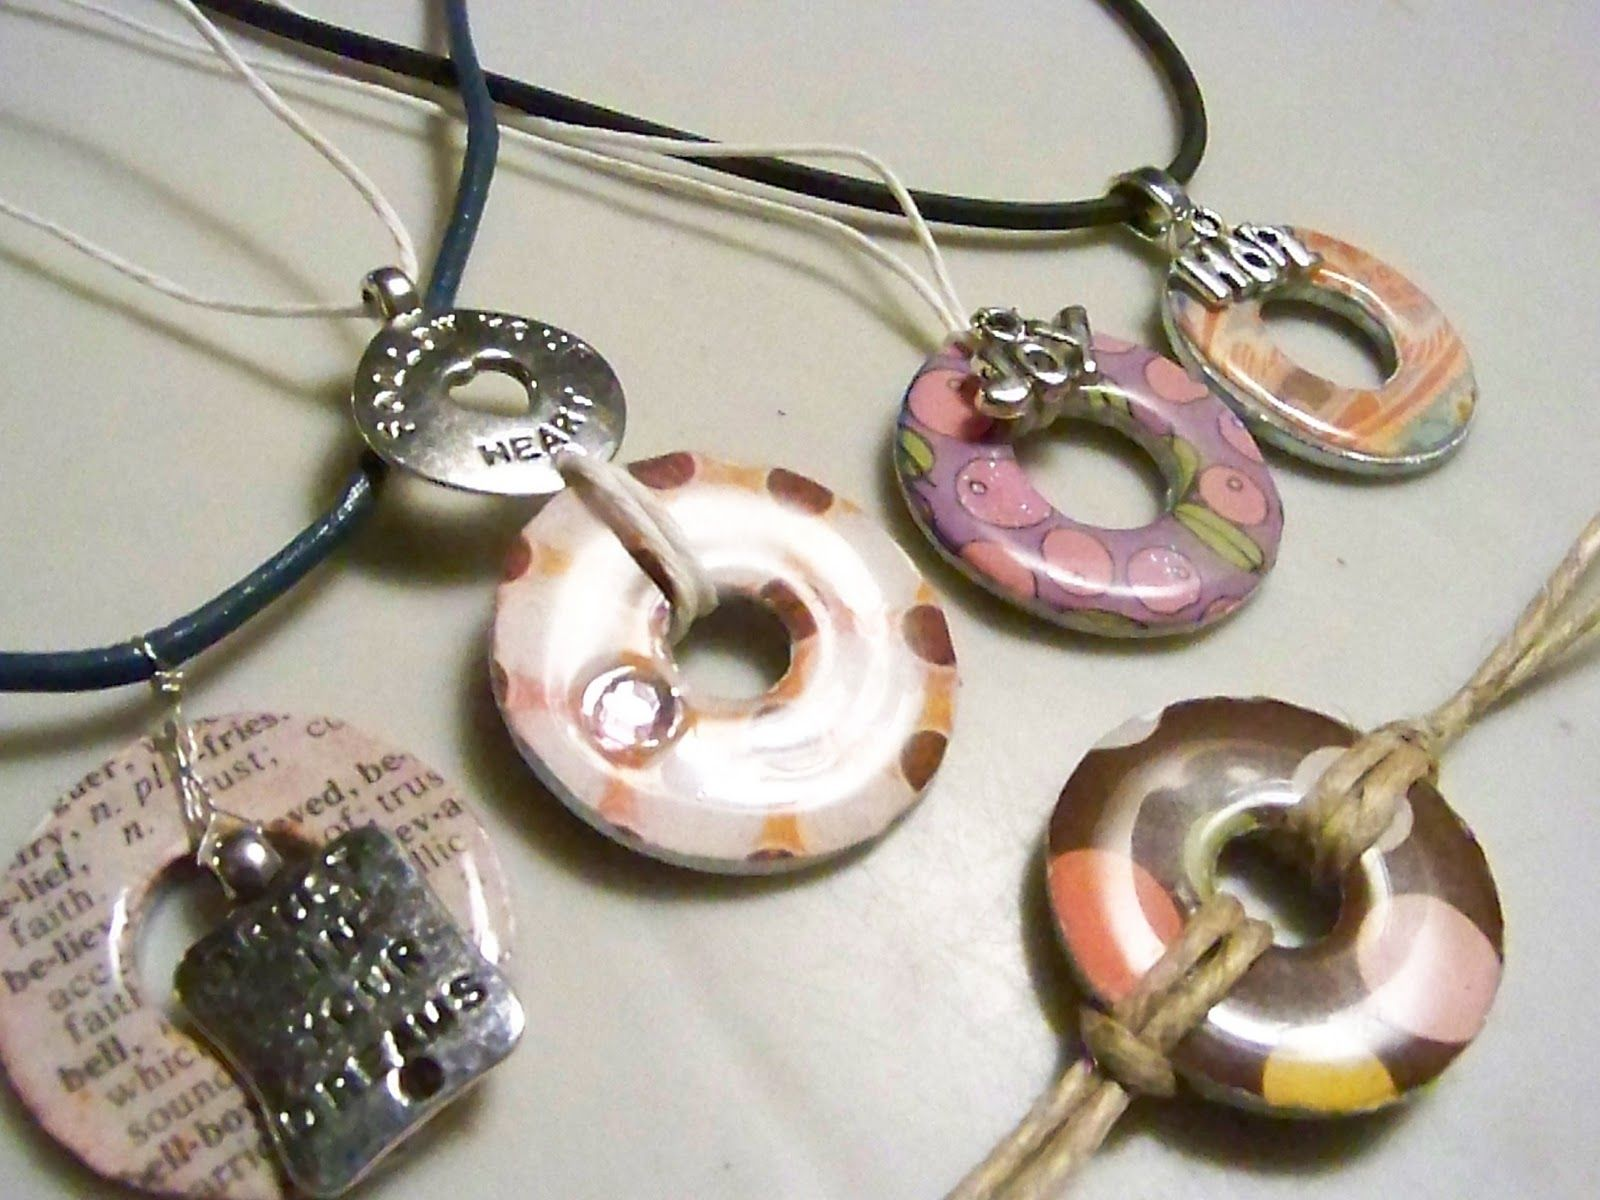 washer decoupage camp img crafts necklace